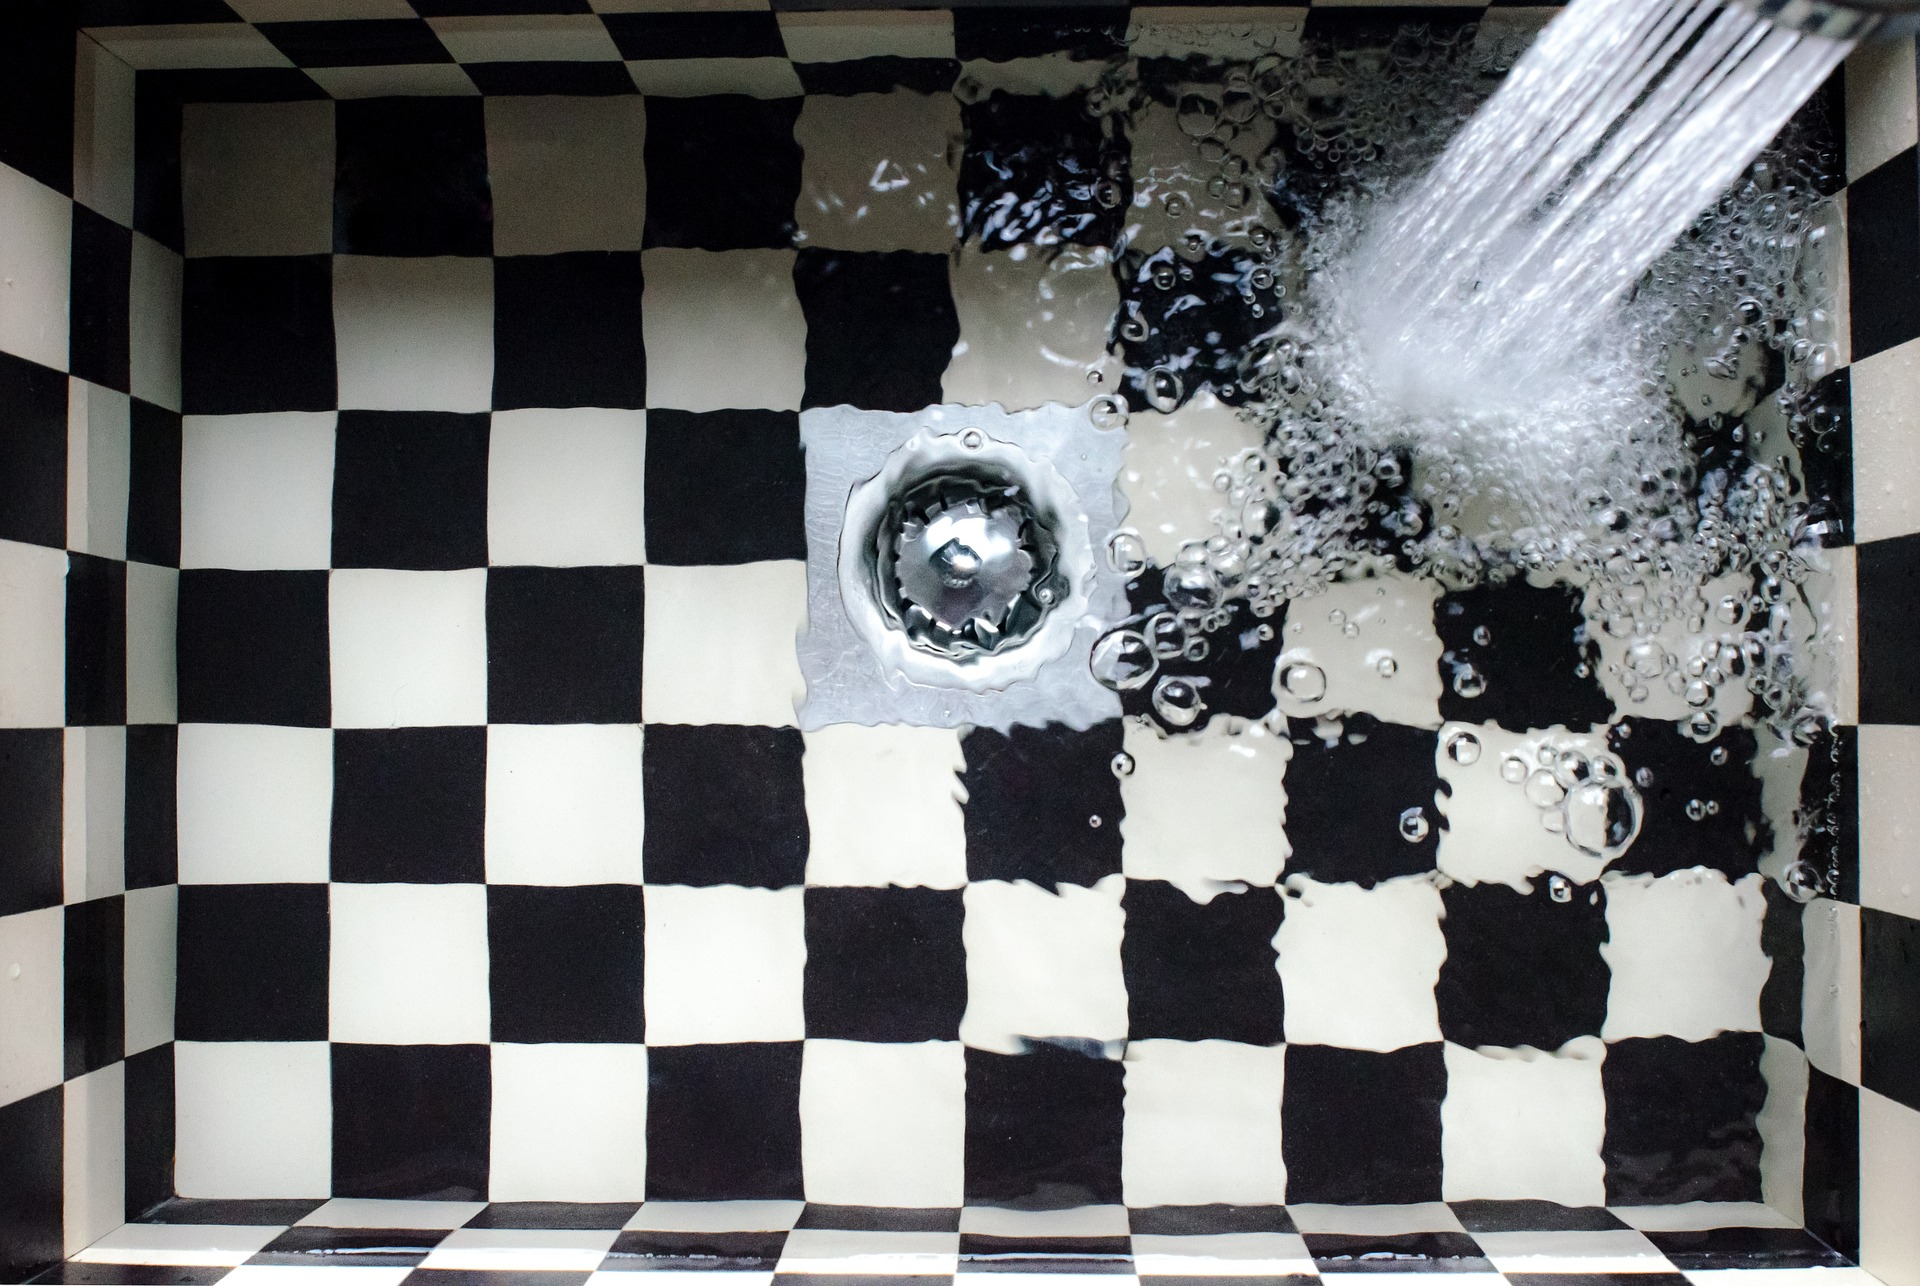 Nice checkered sink with hot water system doing well filling it up.